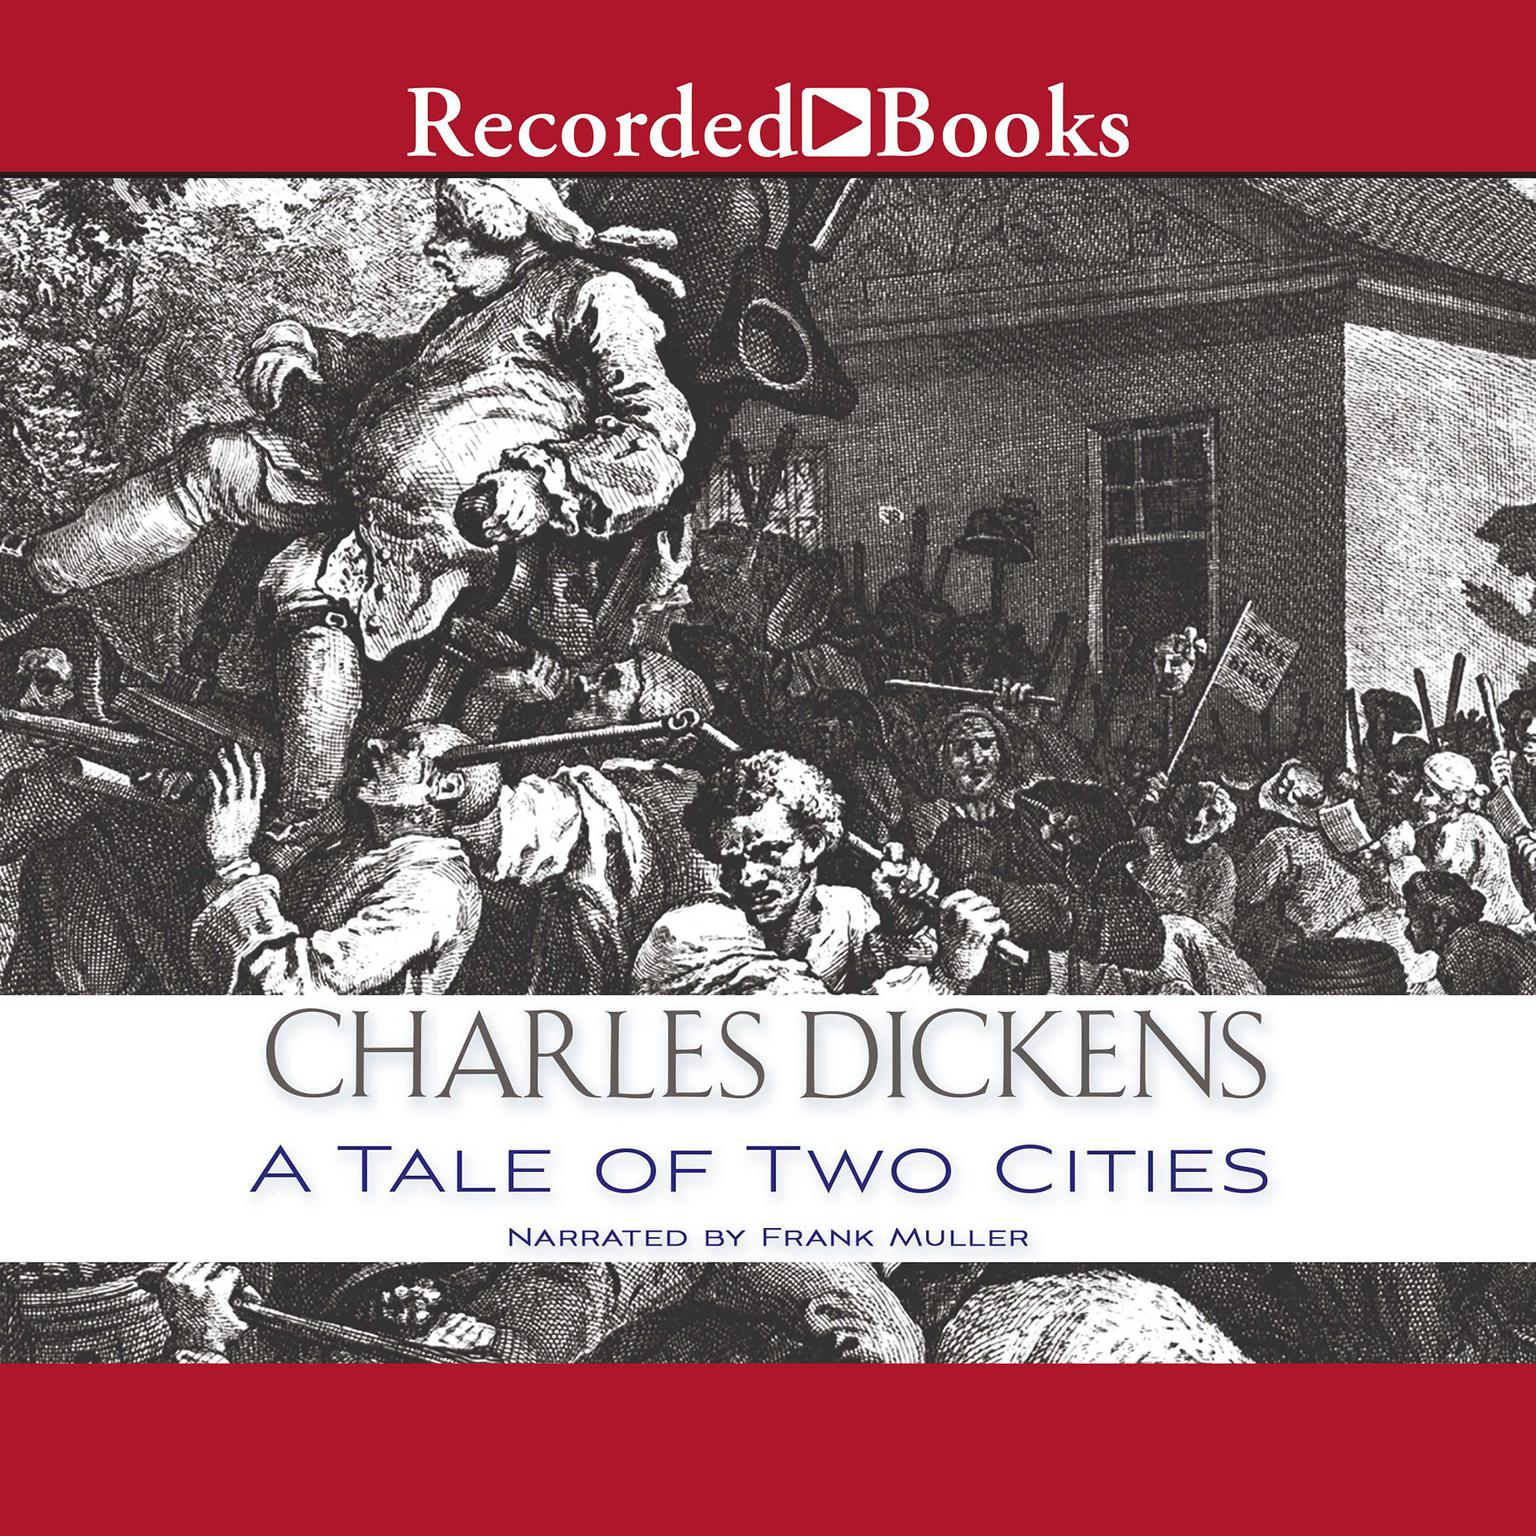 tale of two cities an analysis In the novel a tale of two cities, by charles dickens, the author uses many minor characters although labeled minor, these characters contribute fully, and are essential to the depth and excitement of the novel.